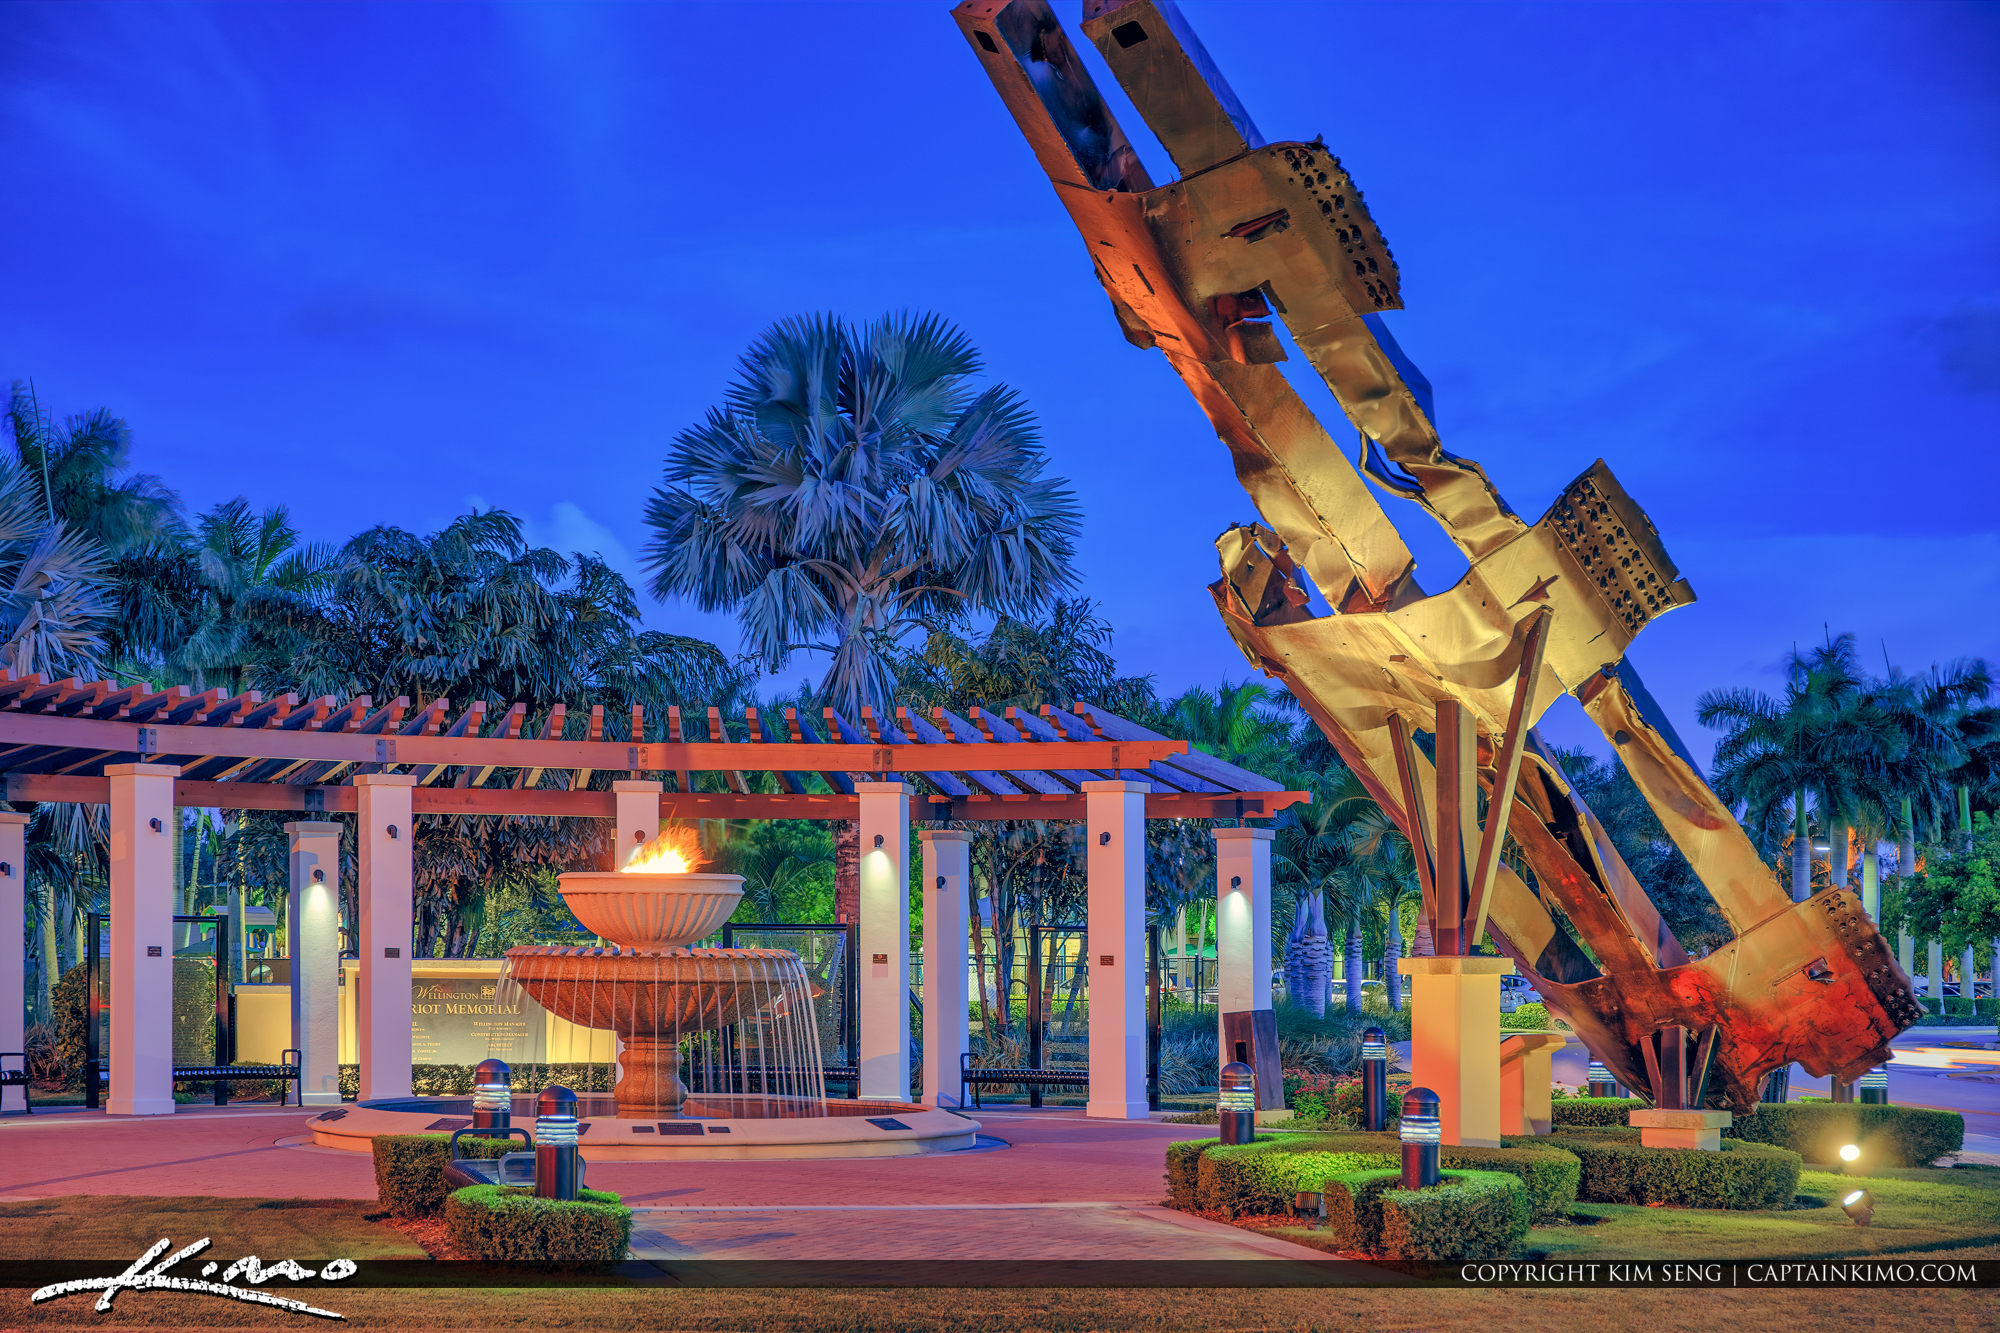 Large metal beam sculpture next to eternal flame fountain and pavilion